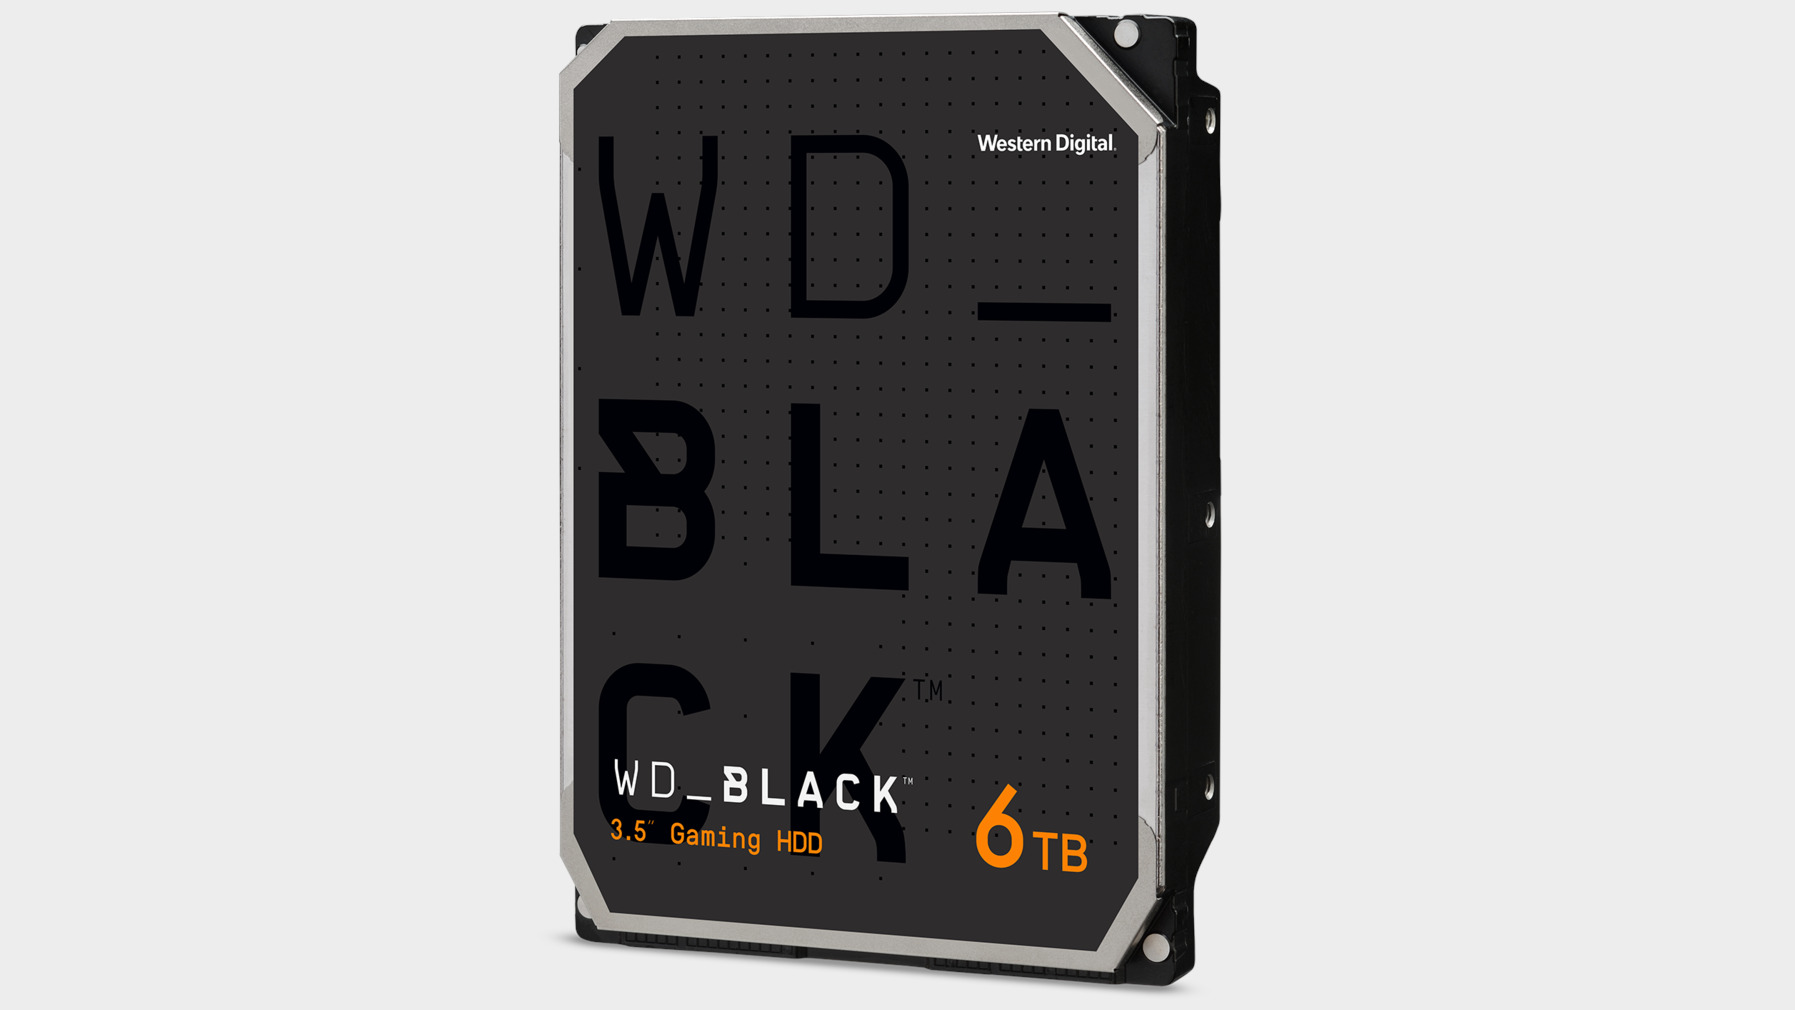 This WD Black 6TB hard drive is on sale for $170 today